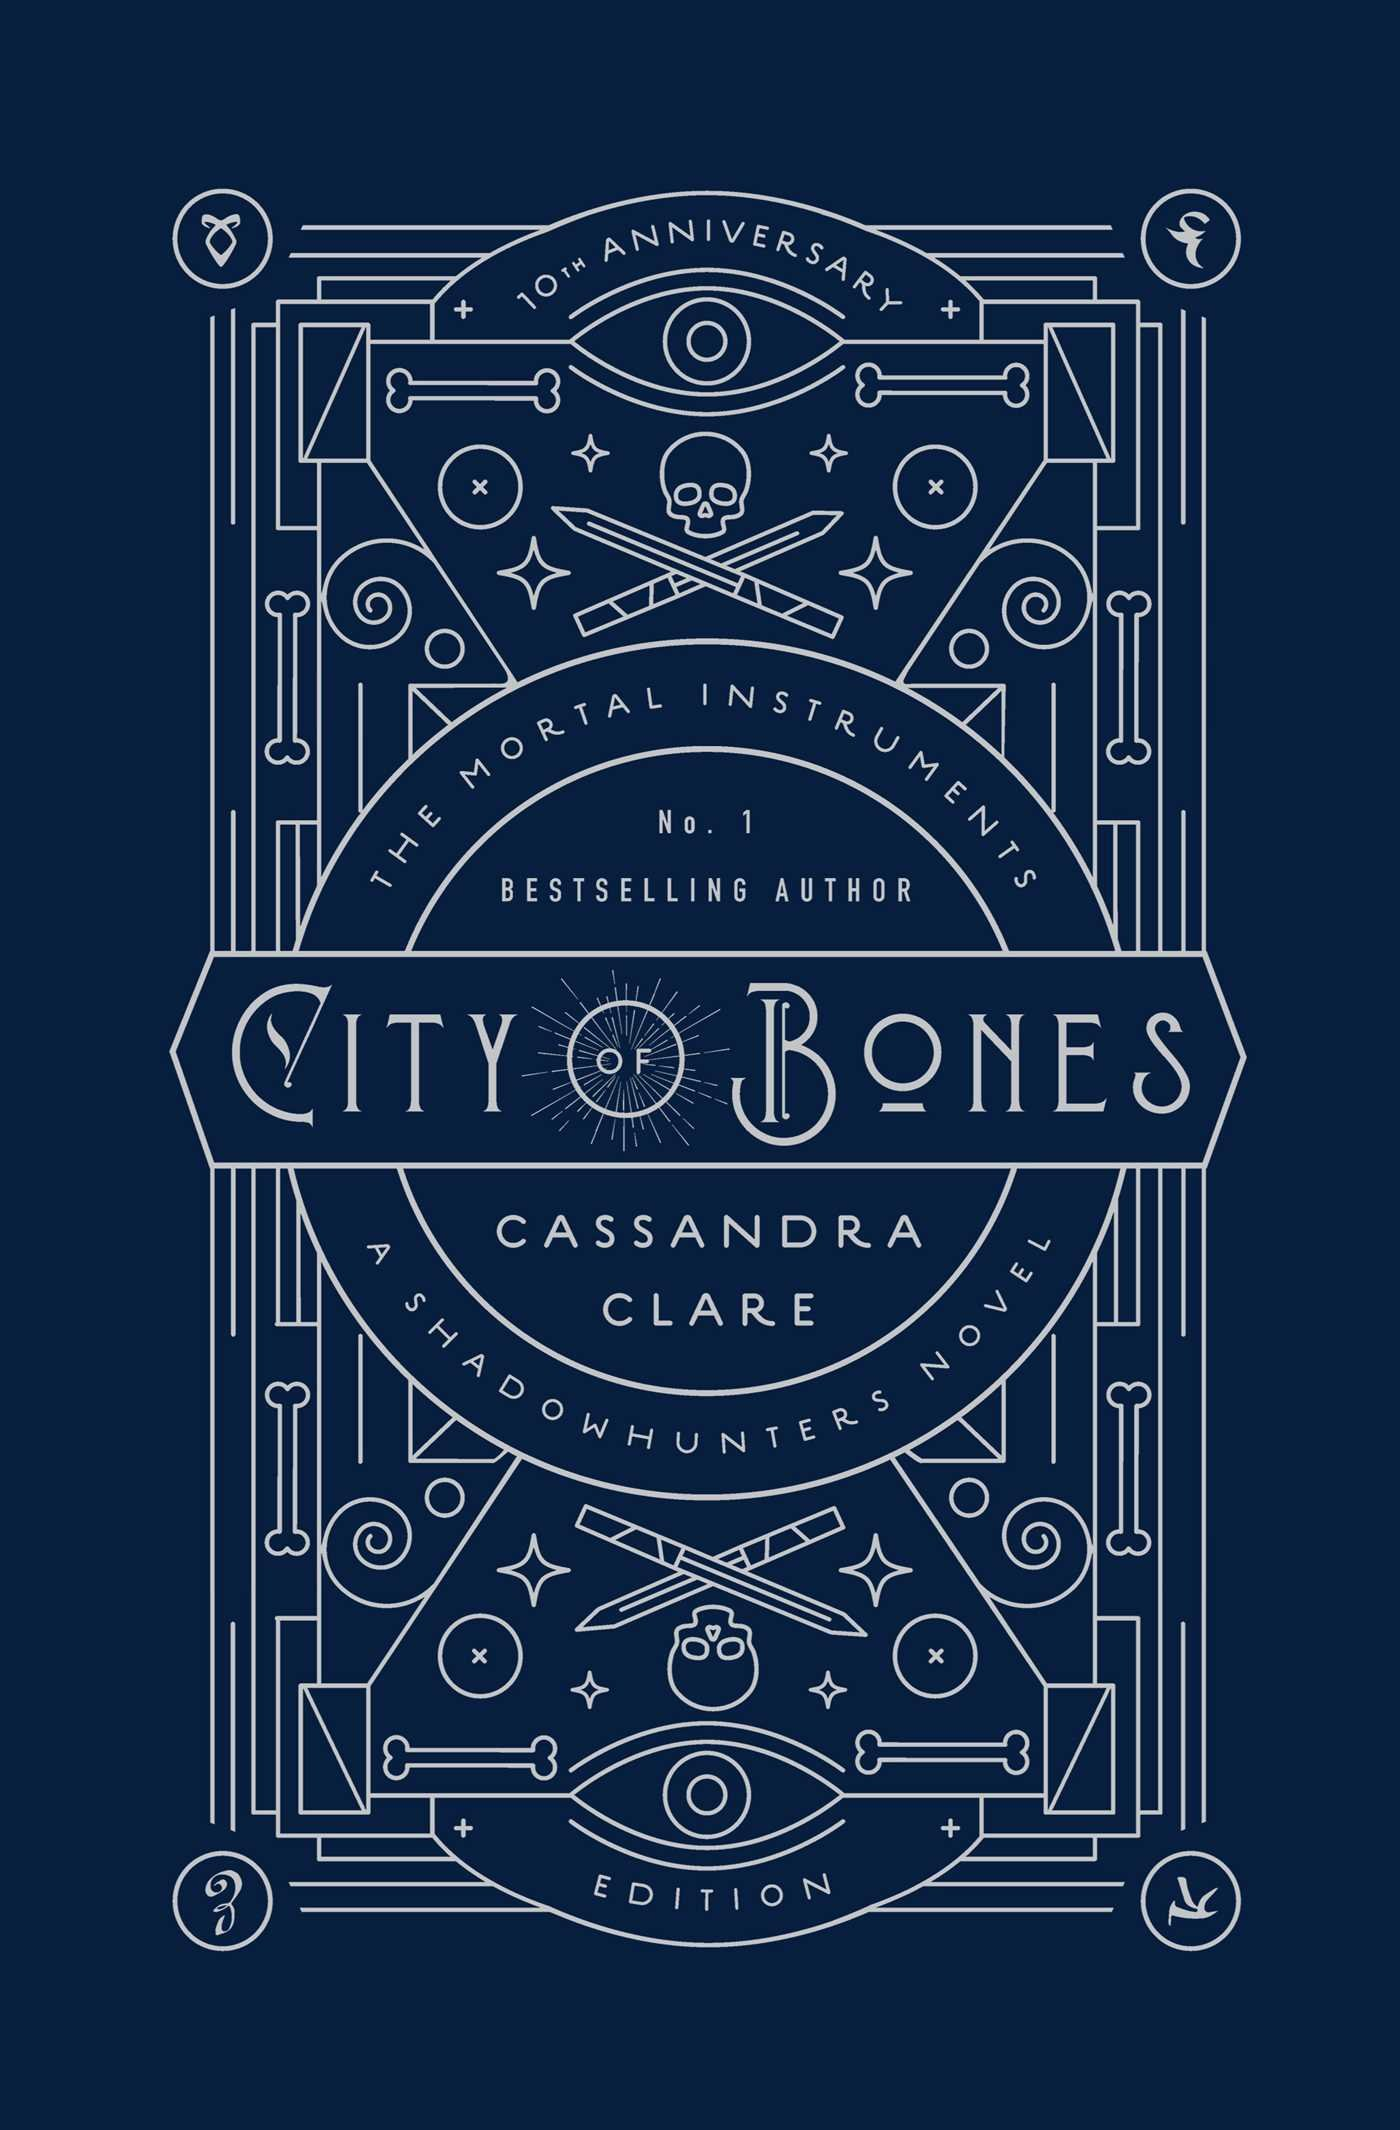 Amazon.com: City of Bones: 10th Anniversary Edition (1) (The Mortal  Instruments) (9781534406254): Clare, Cassandra, Jennings, Kathleen, Jean,  Cassandra: Books